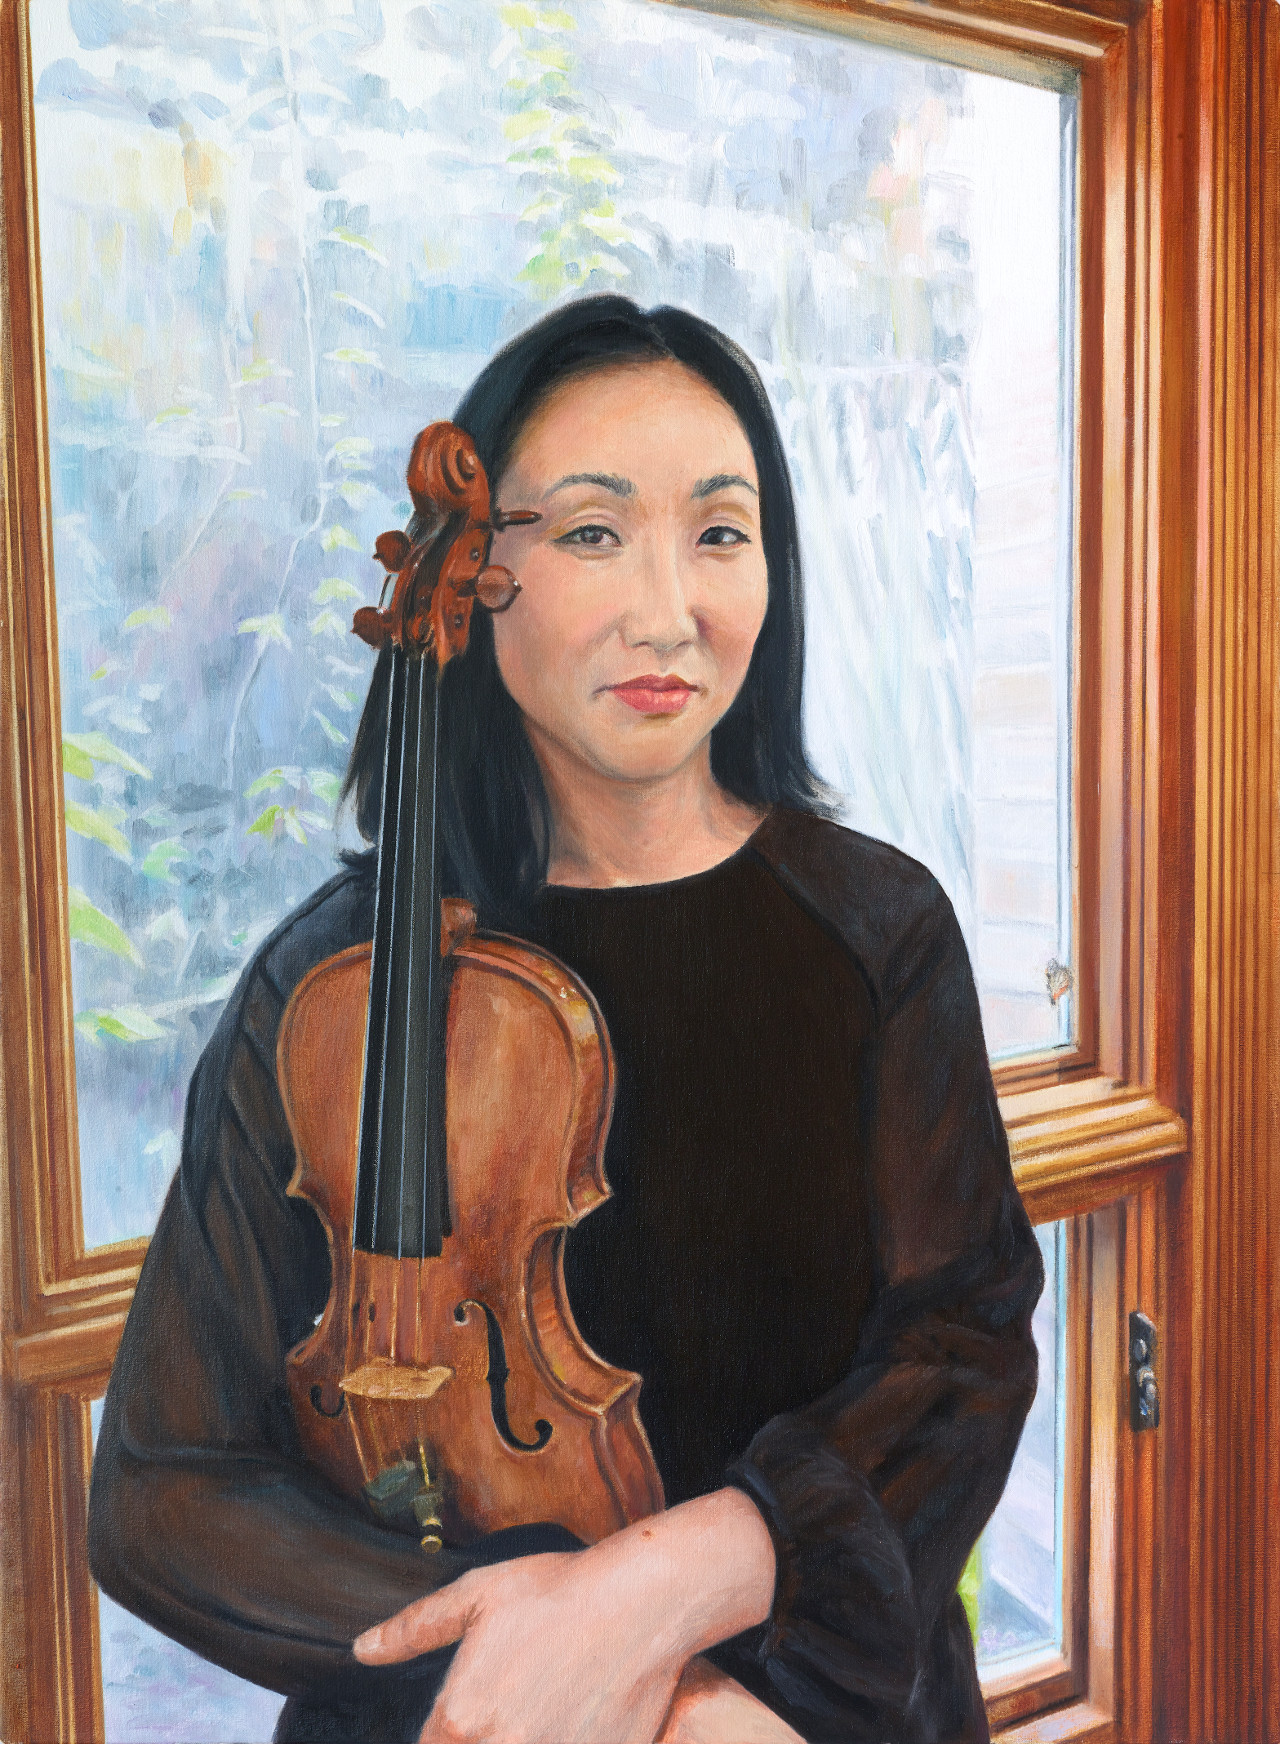 Elissa Lee, 2018, oil on linen, 30 x 24 inches